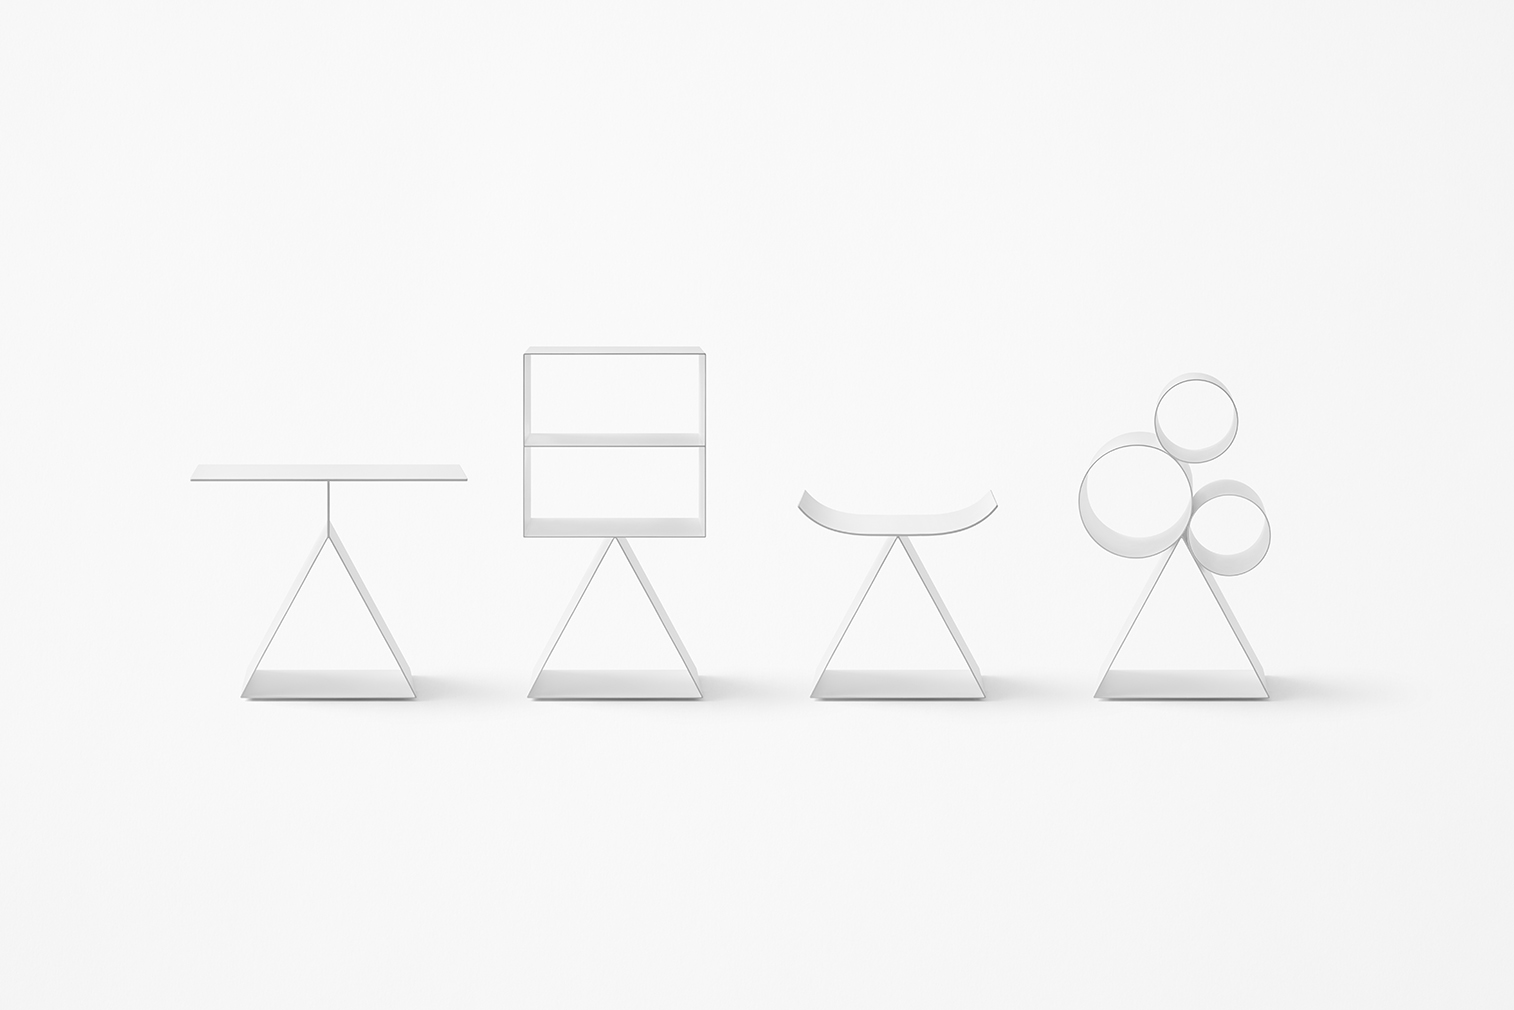 Minimal design objects inspired by Chinese pictograms